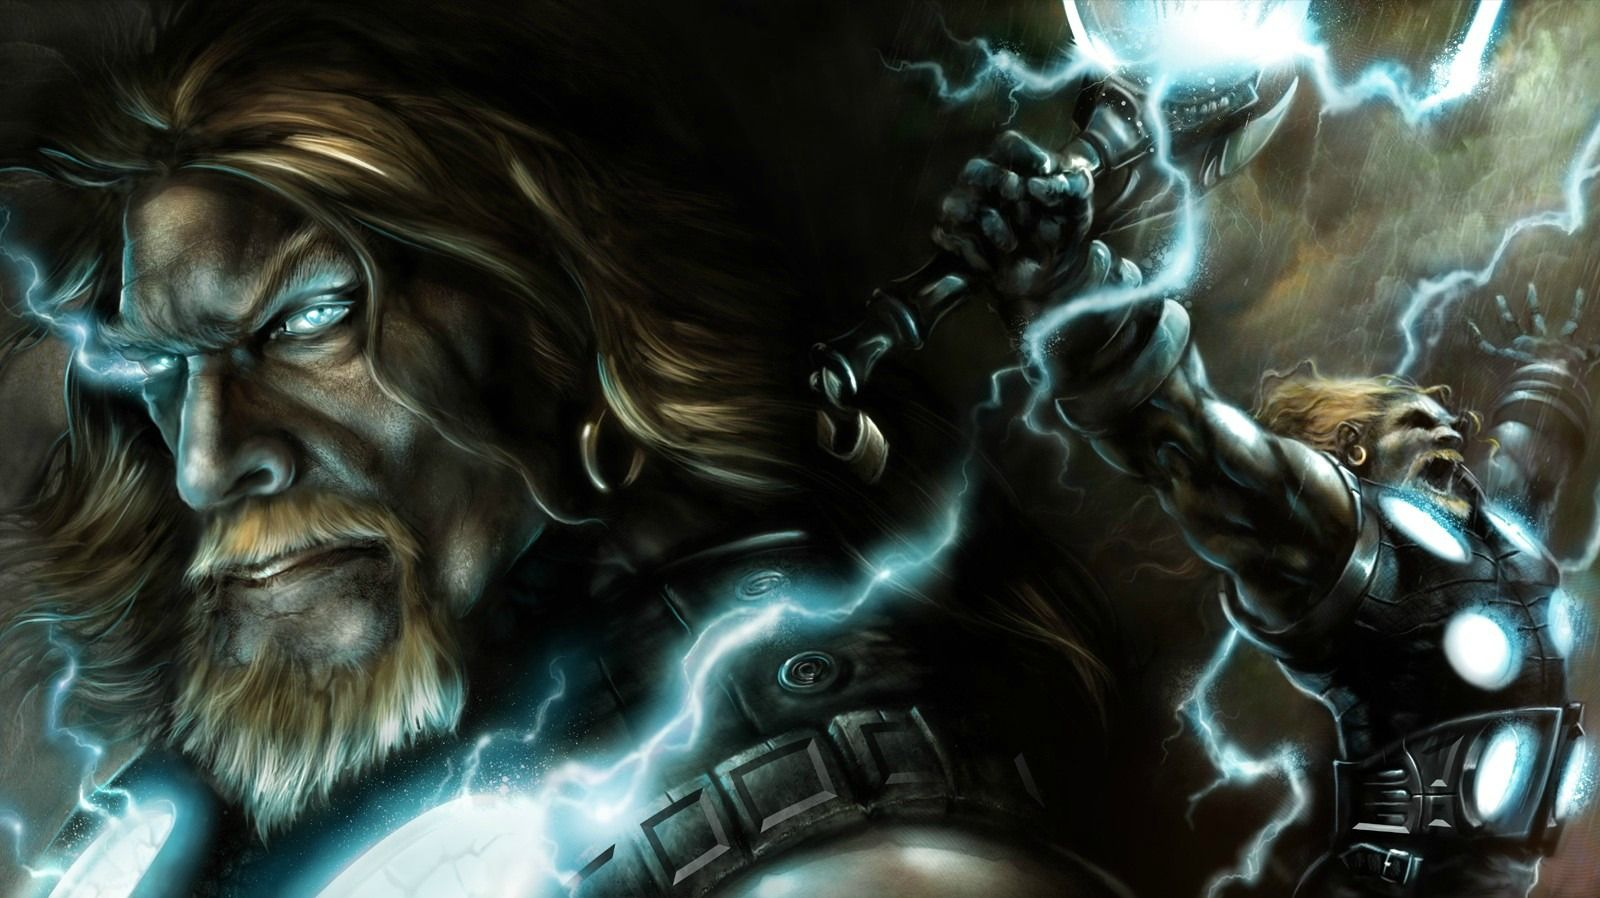 1600x898 Thor Wallpaper and Background Image | 1600x898 | ID:187015 ...